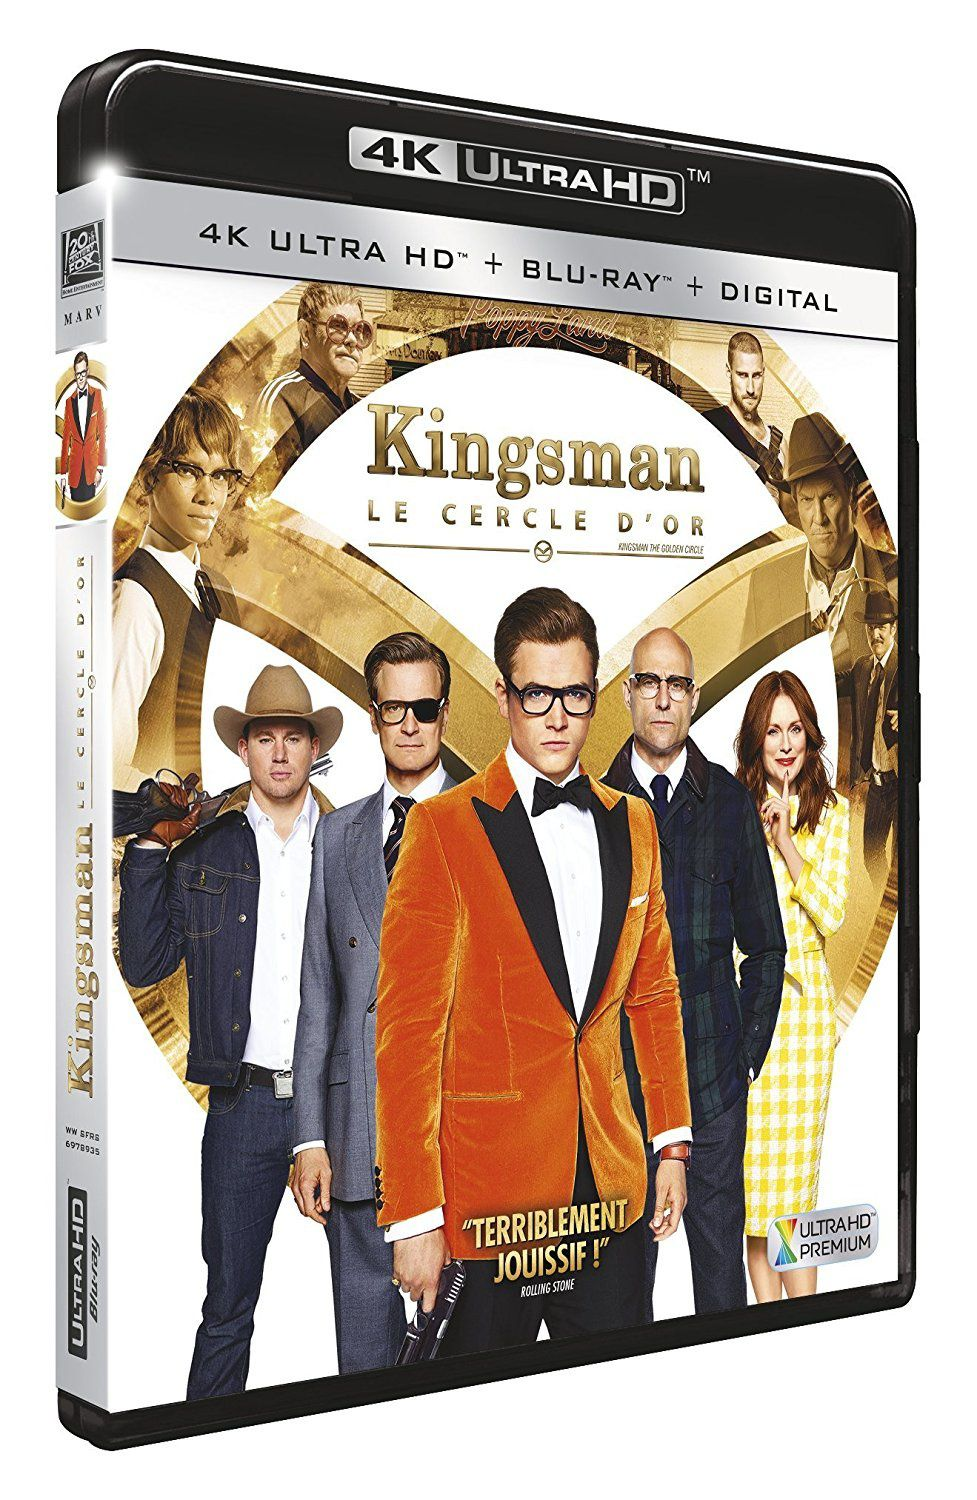 [REVUE CINEMA BLU-RAY 4K] KINGSMAN LE CERCLE D'OR